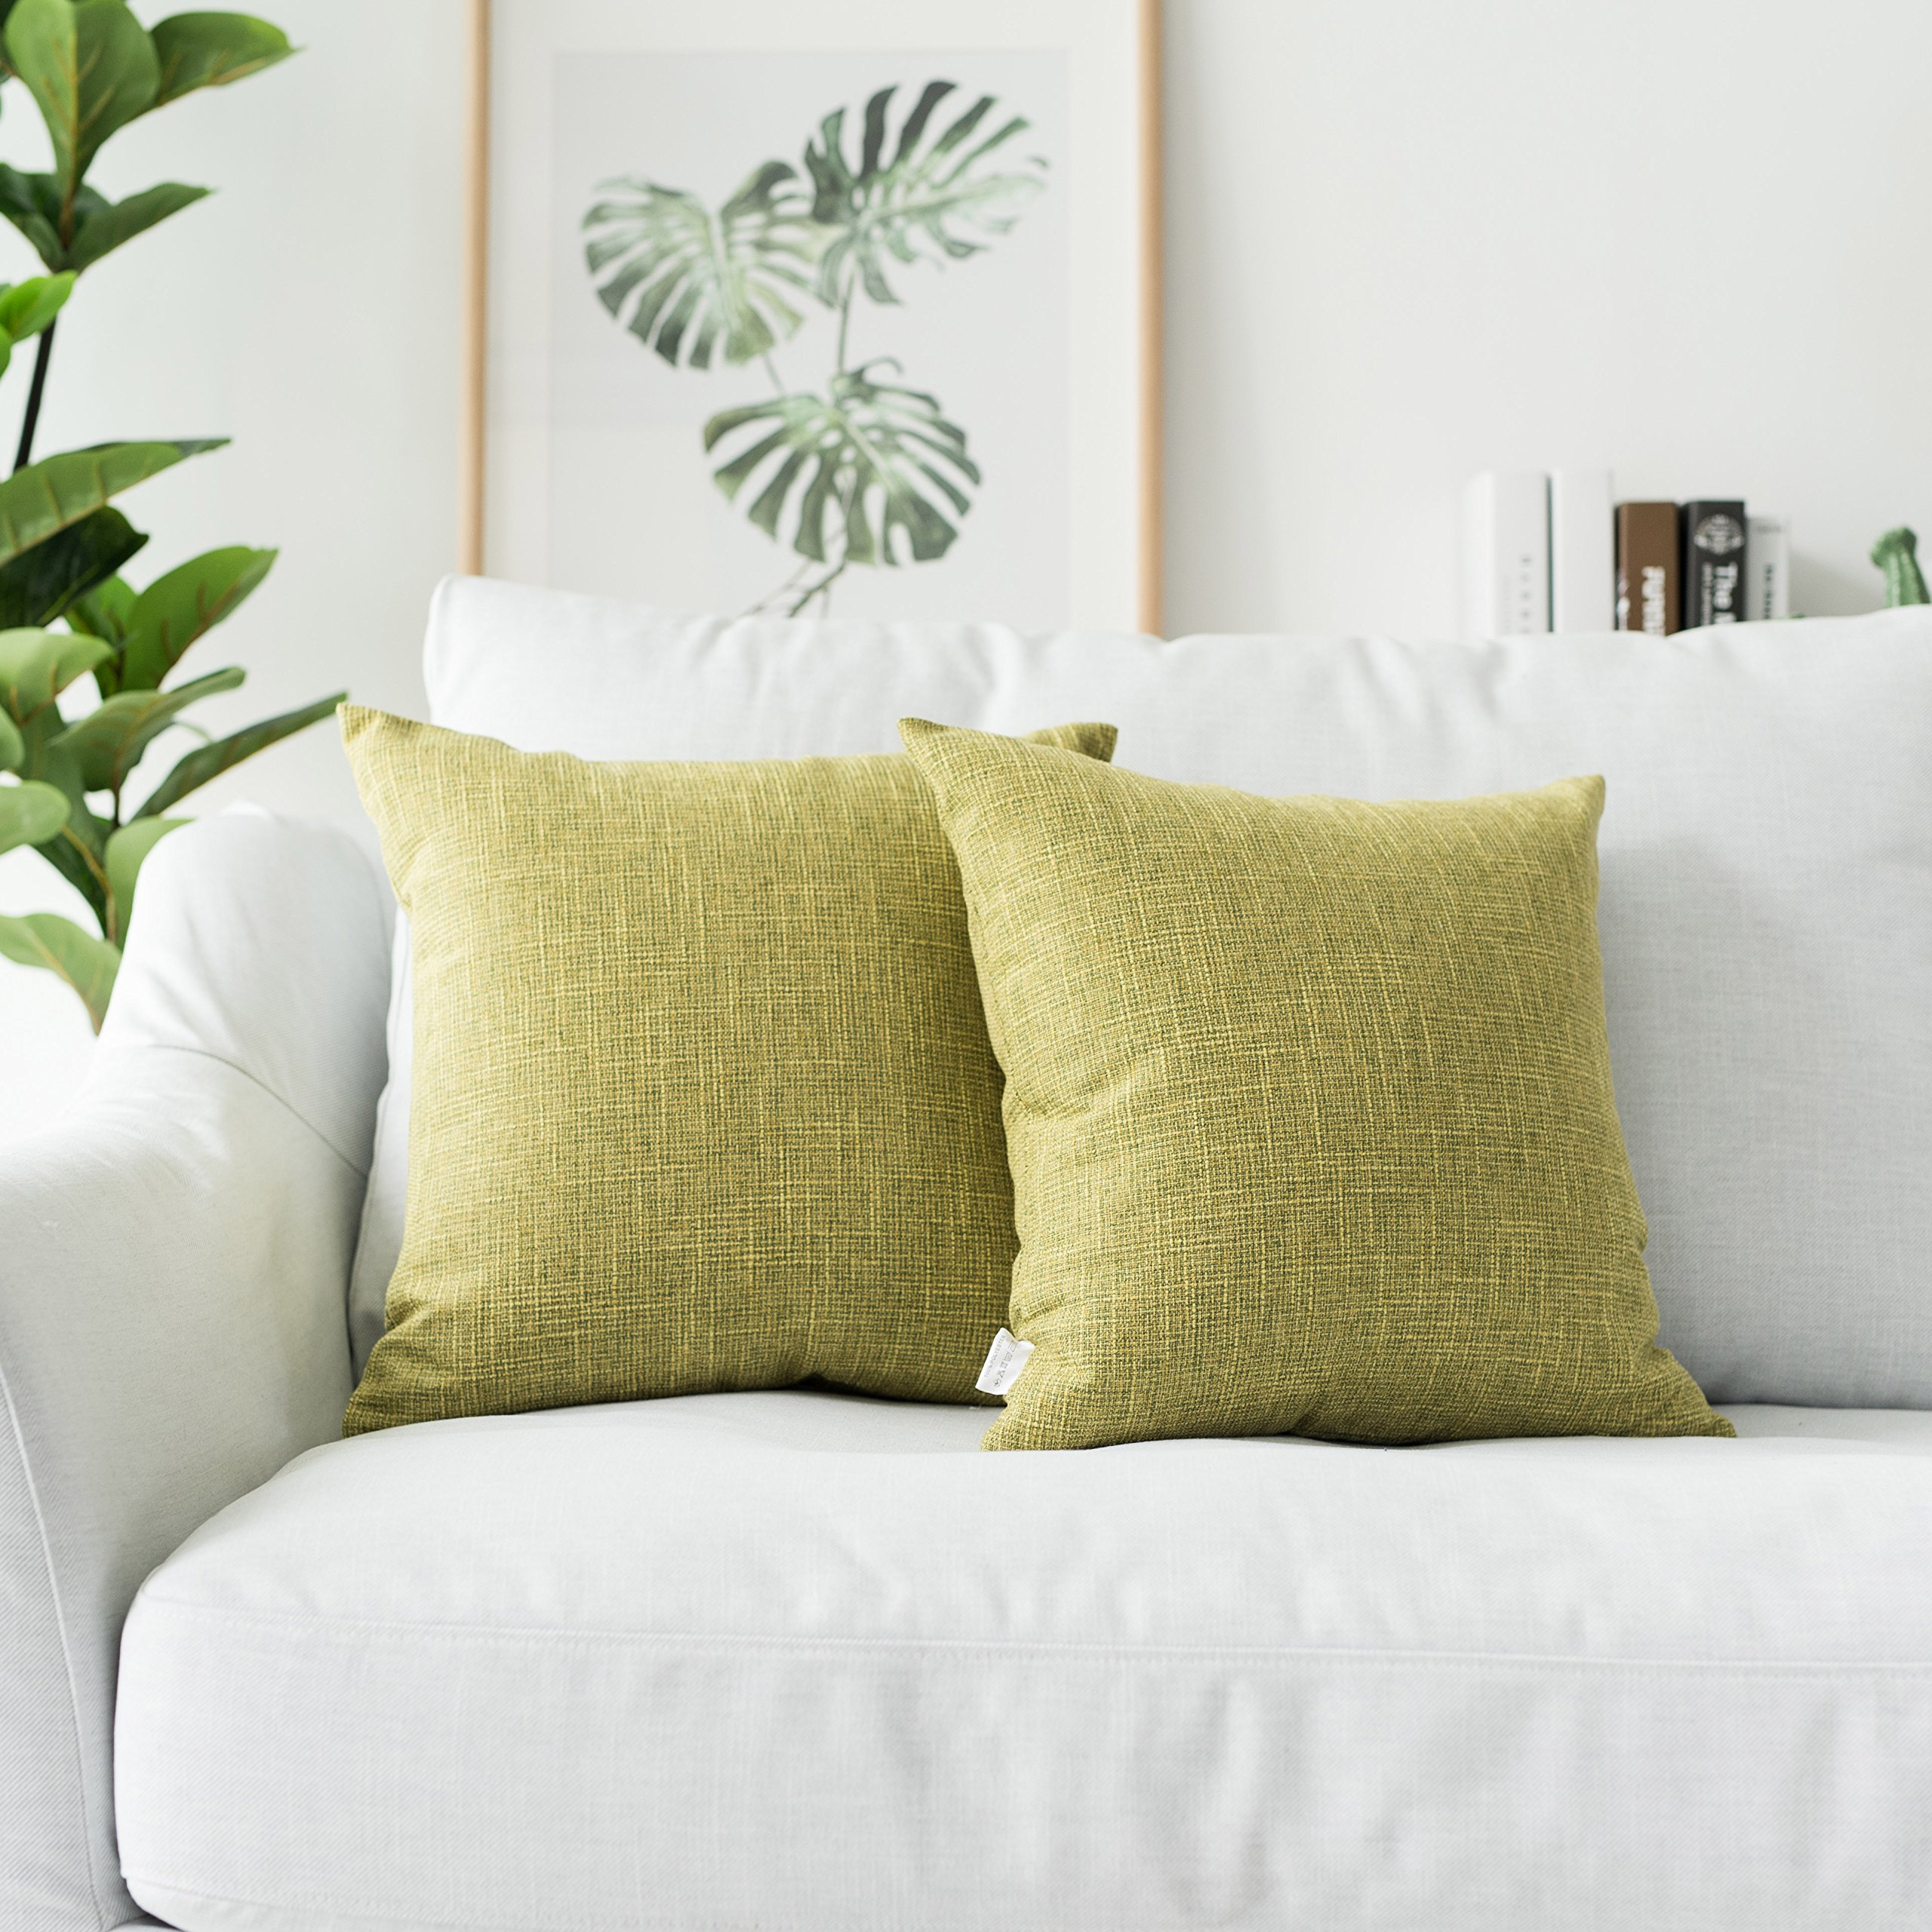 Kevin Textile Pack of 2, Decorative 2 Tone Linen Pillow Covers Cushion Cover for Chair/Sofa/Bed/Car, 18 x 18 Inches,Linden Green